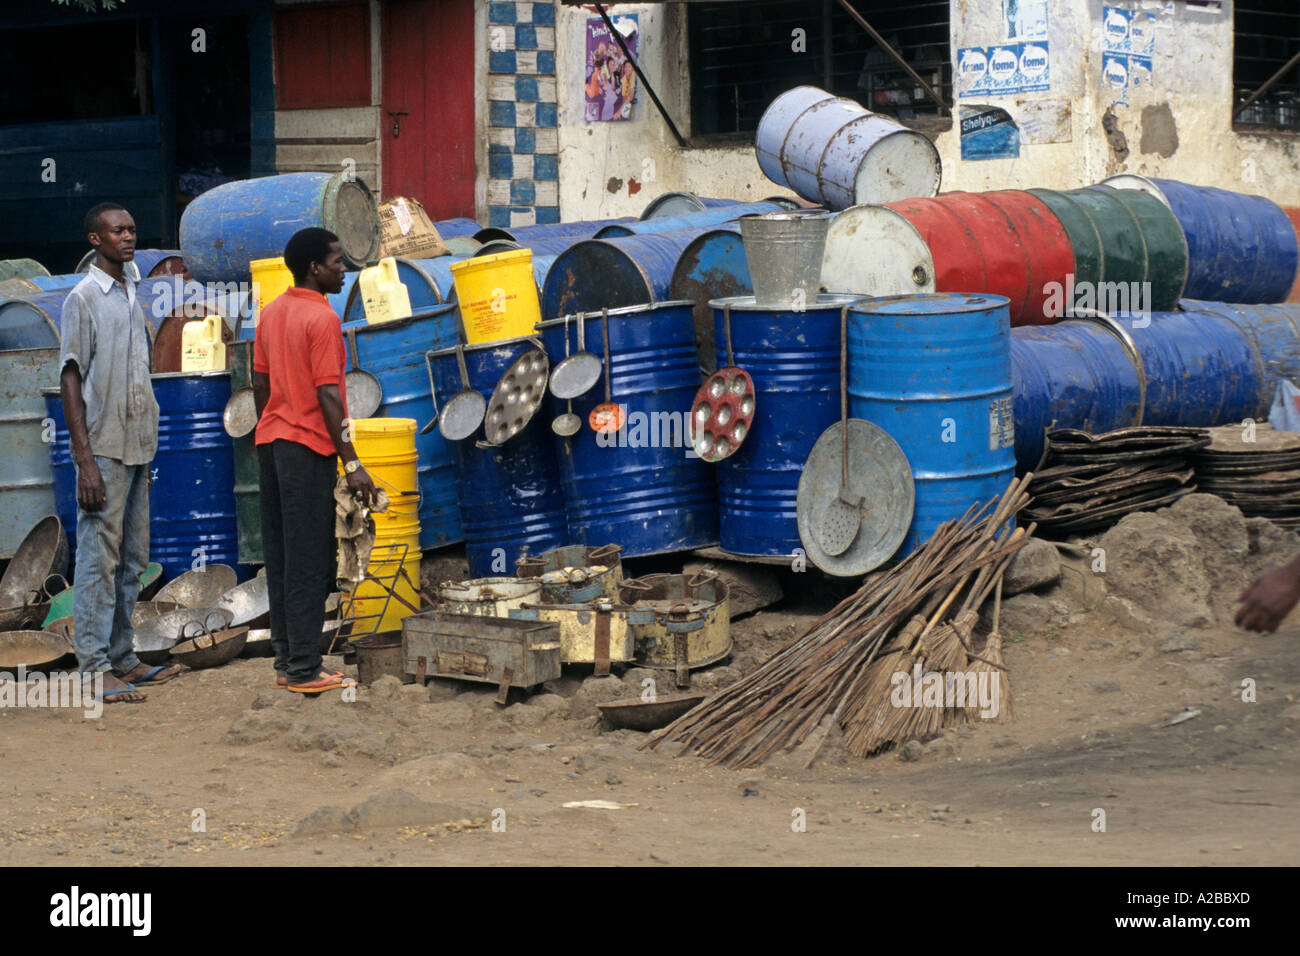 Used oil drums are recycled into cooking stoves and cooking utensils; Moshi; Tanzania Stock Photo